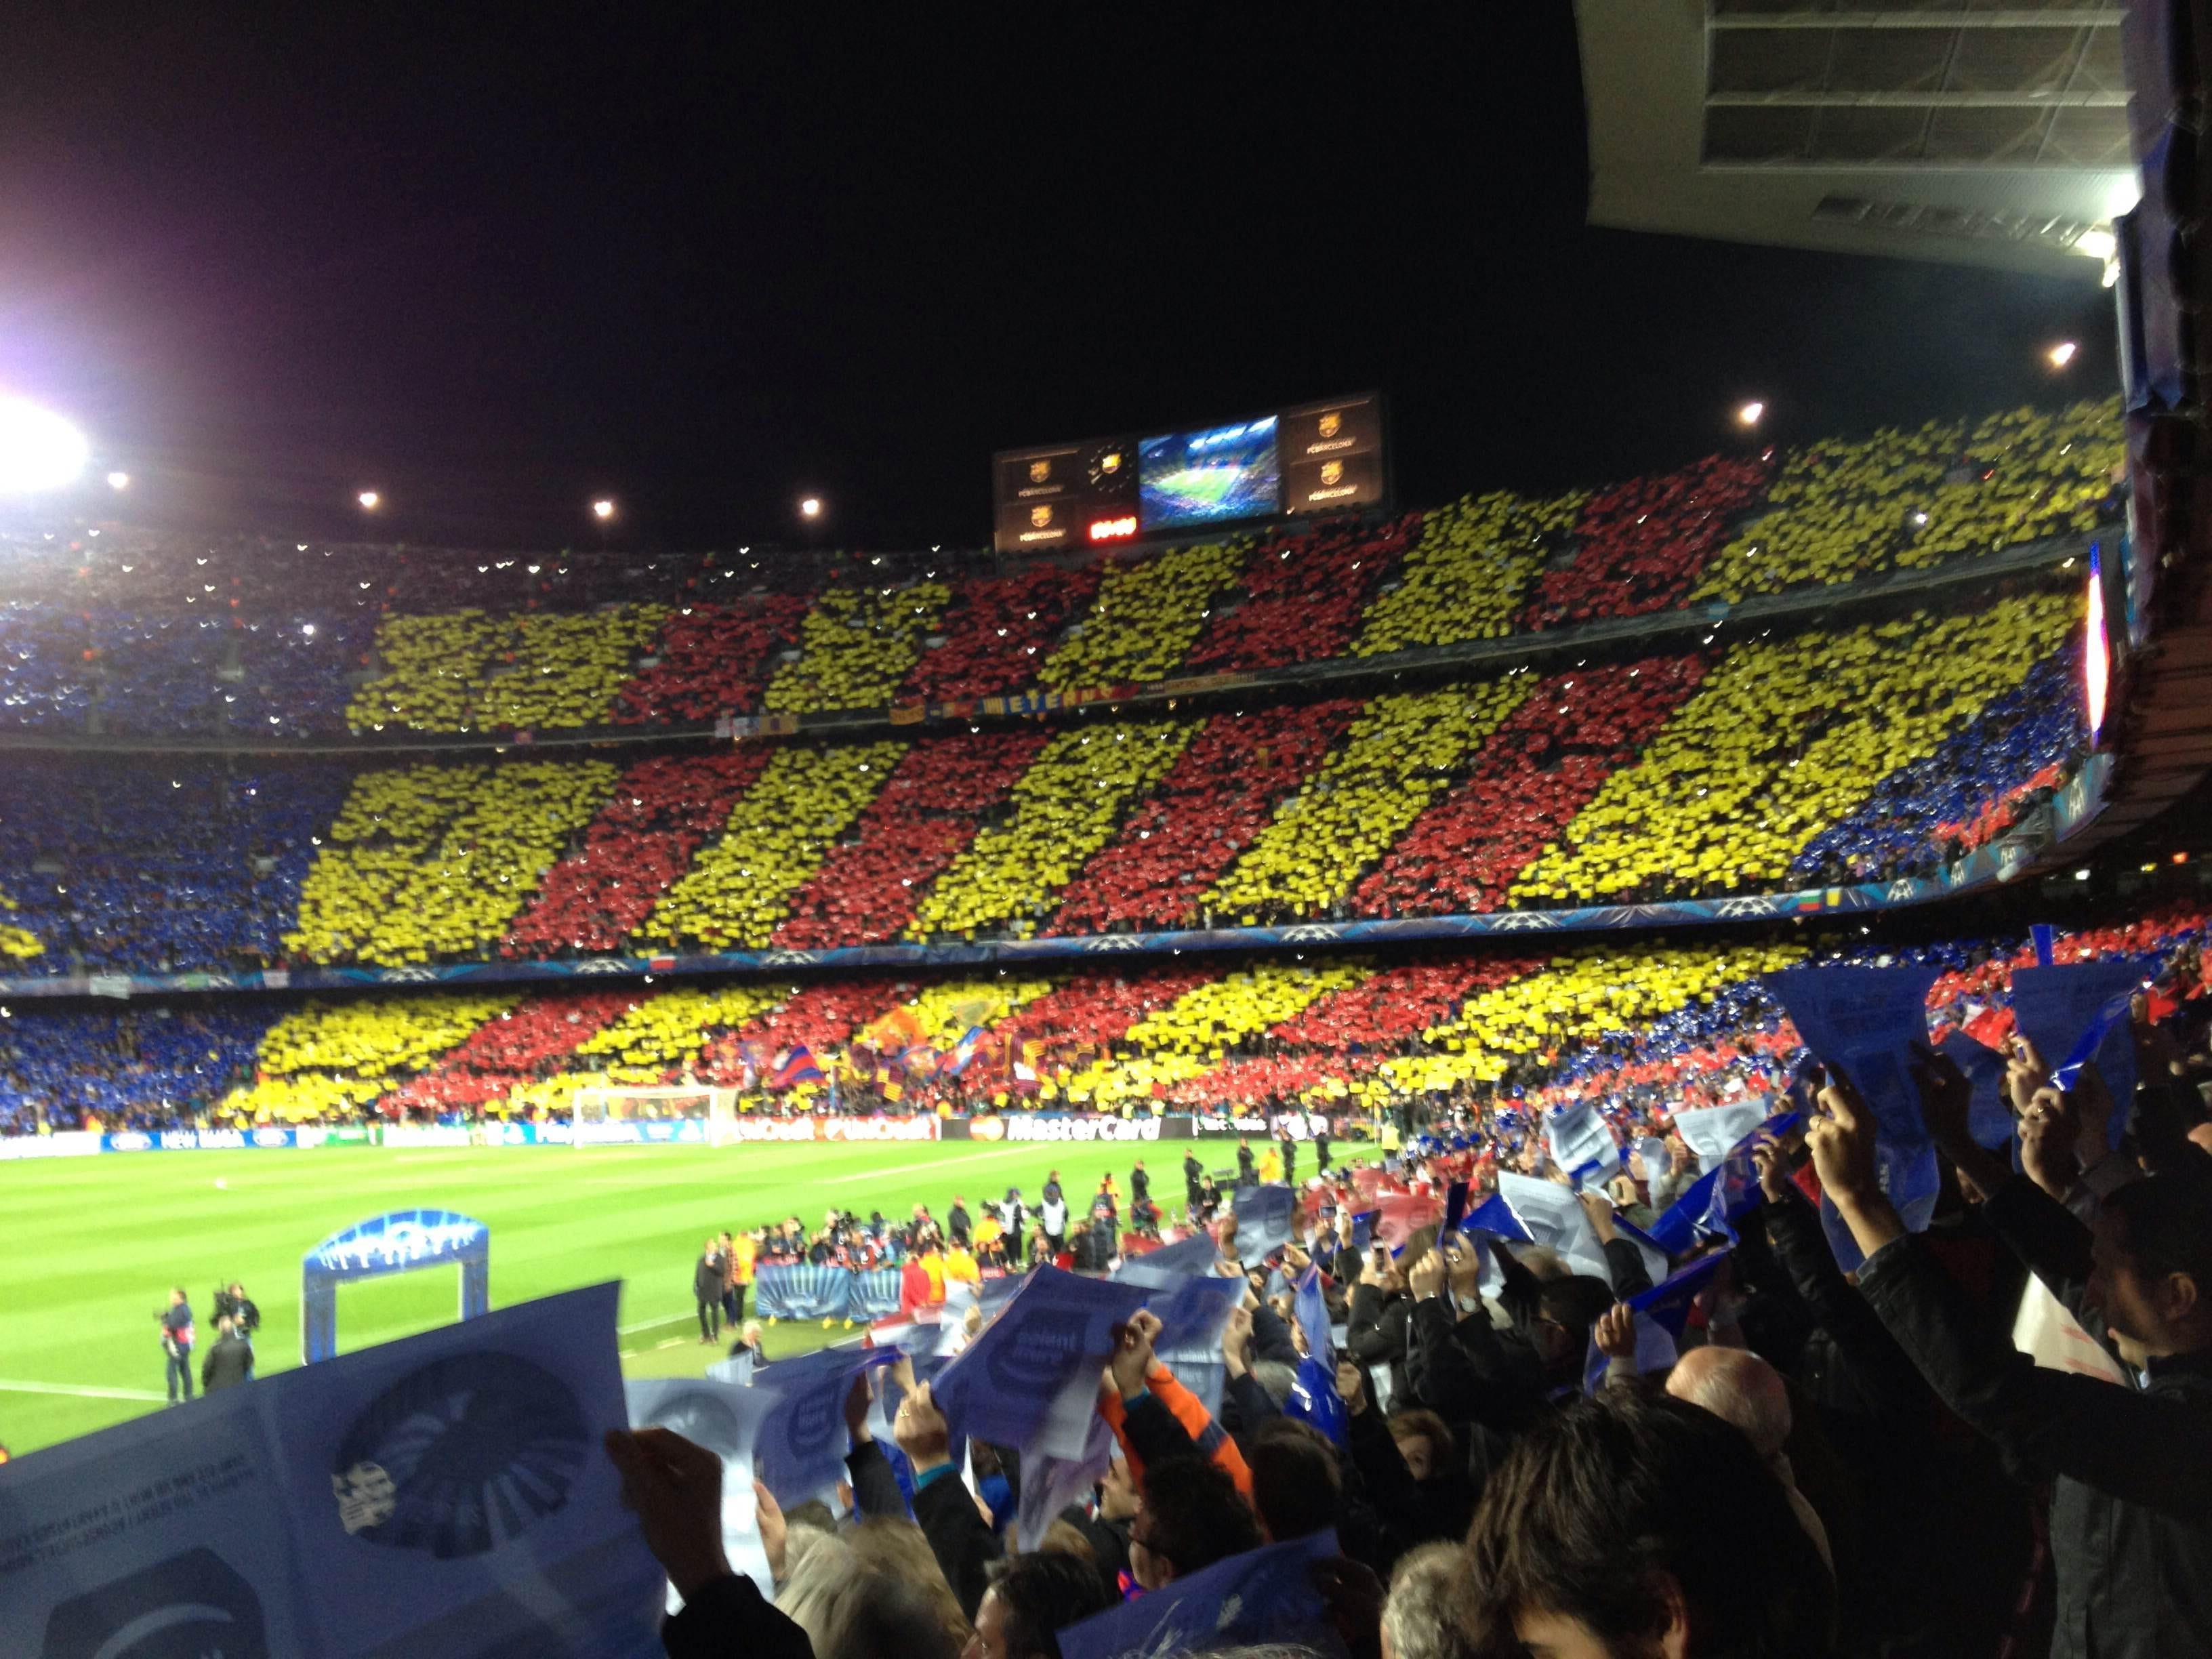 Carreras en Camp Nou